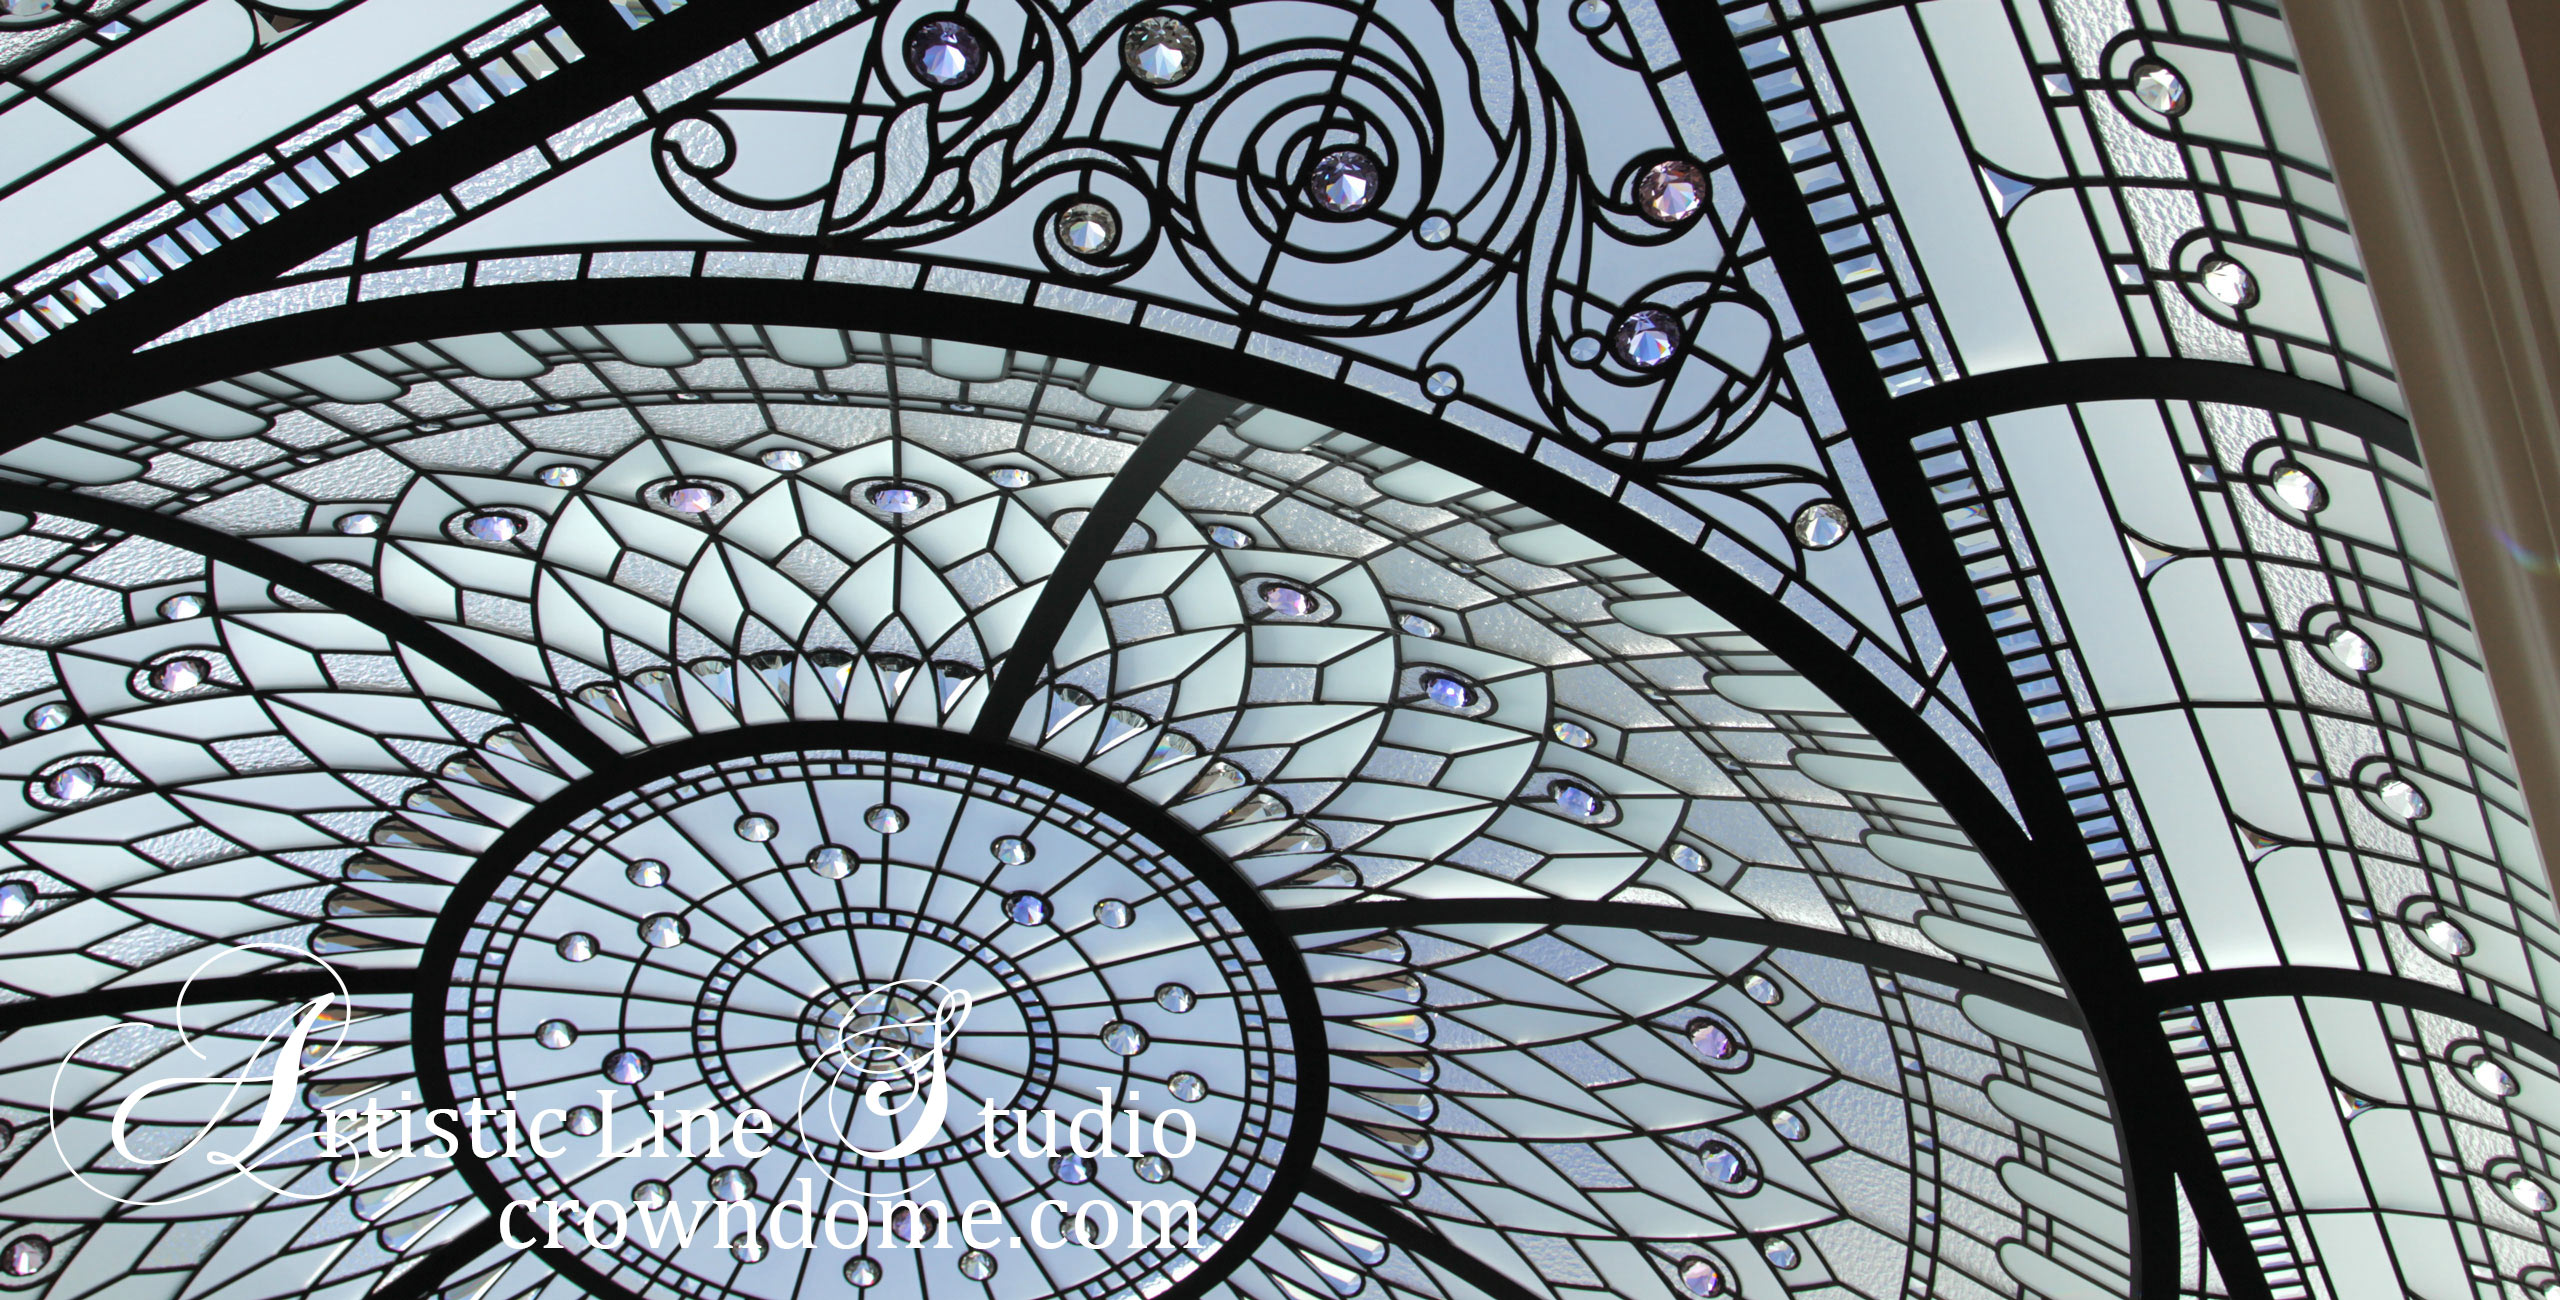 Gorgeous decorative glass skylight - stained and leaded glass domed skylight ceiling for a private residence meditation room. Architectural art masterpiece